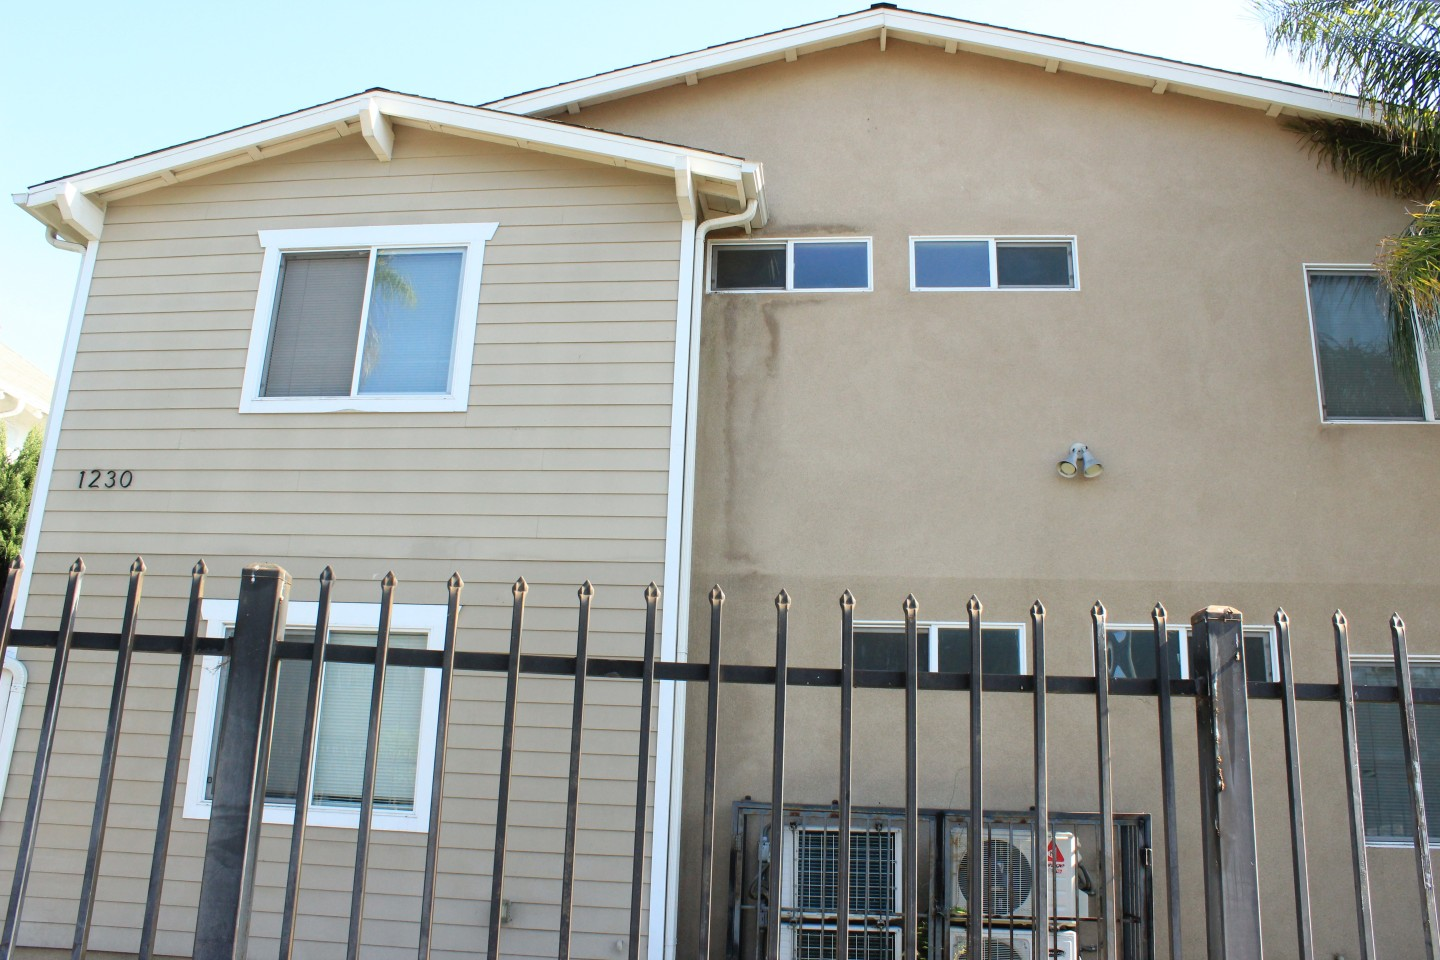 Tripalink Property, cozy house with beige exterior wall, black fence